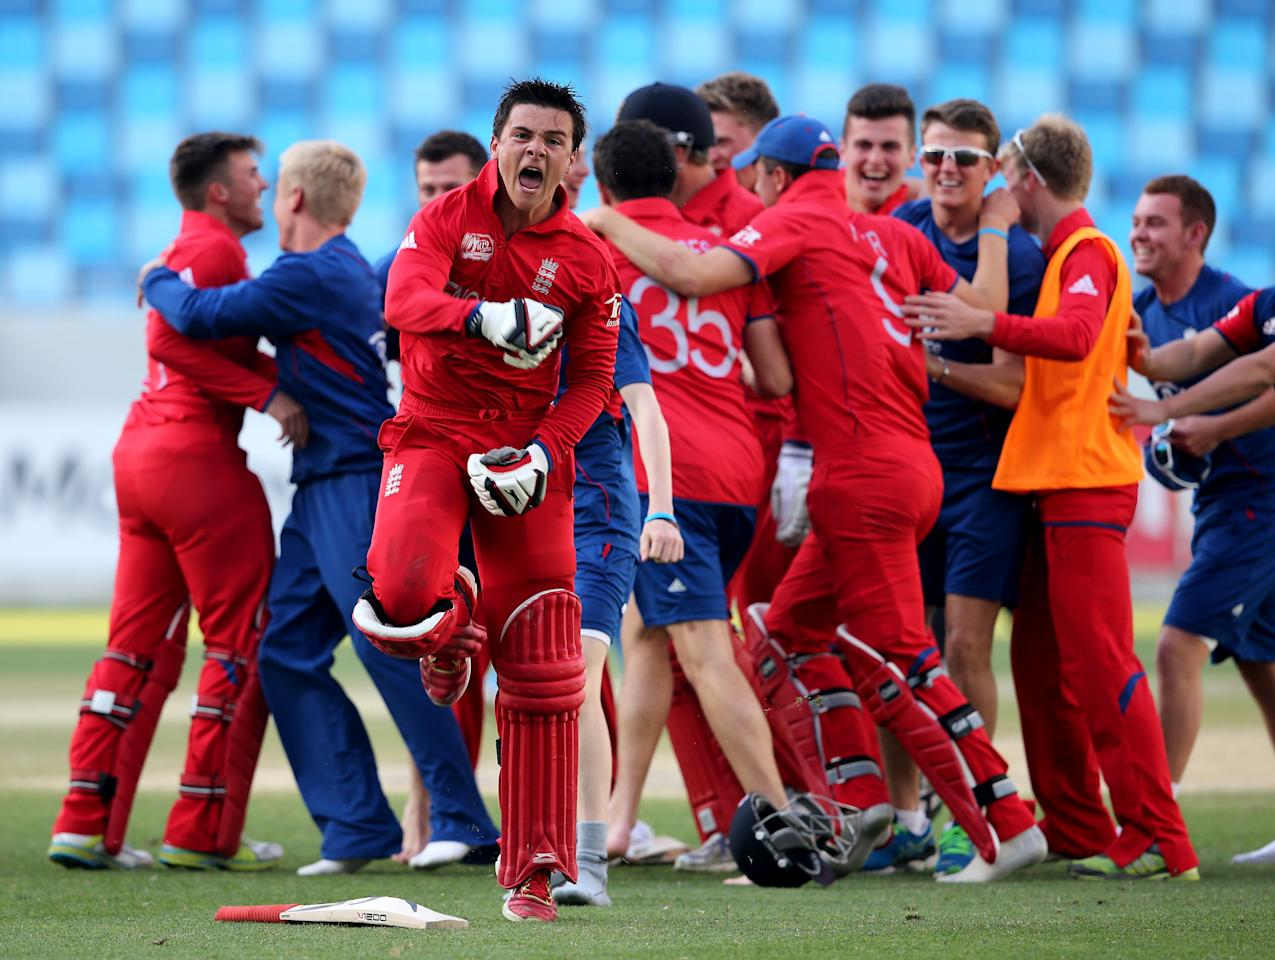 DUBAI, UNITED ARAB EMIRATES - FEBRUARY 22:  Robert Jones of England celebrates with teammates after winning the ICC U19 Cricket World Cup 2014 Quarter Final match between England and India at the Dubai Sports City Cricket Stadium on February 22, 2014 in Dubai, United Arab Emirates.  (Photo by Francois Nel - IDI/IDI via Getty Images)